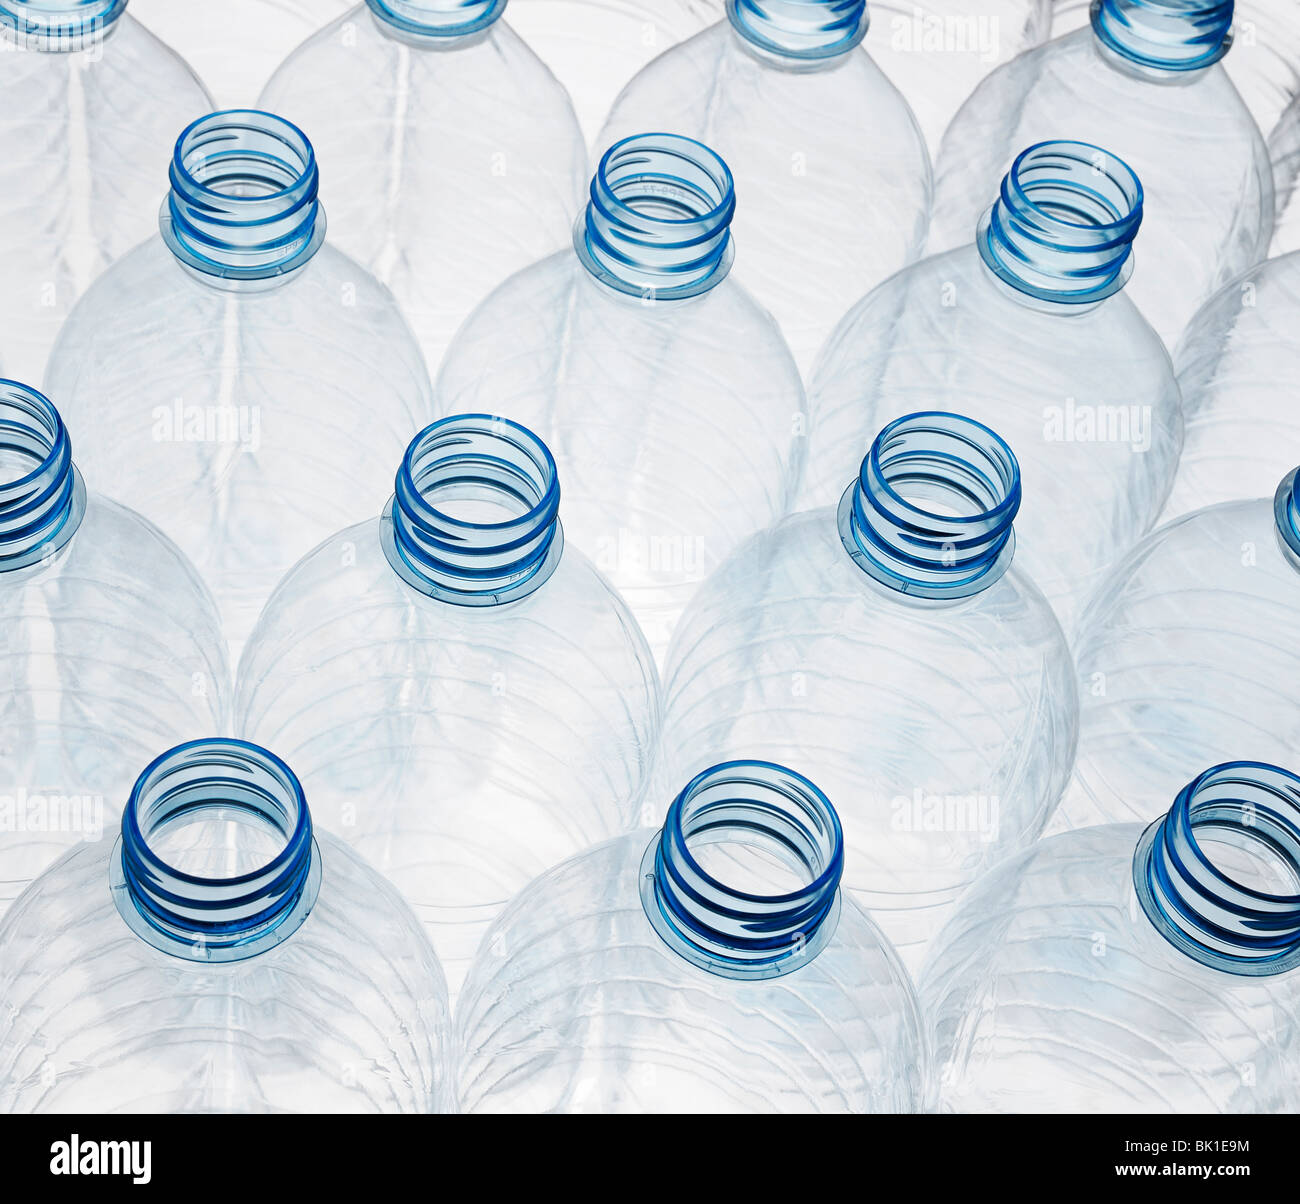 Plastic Bottles Ready for Recycling - Stock Image